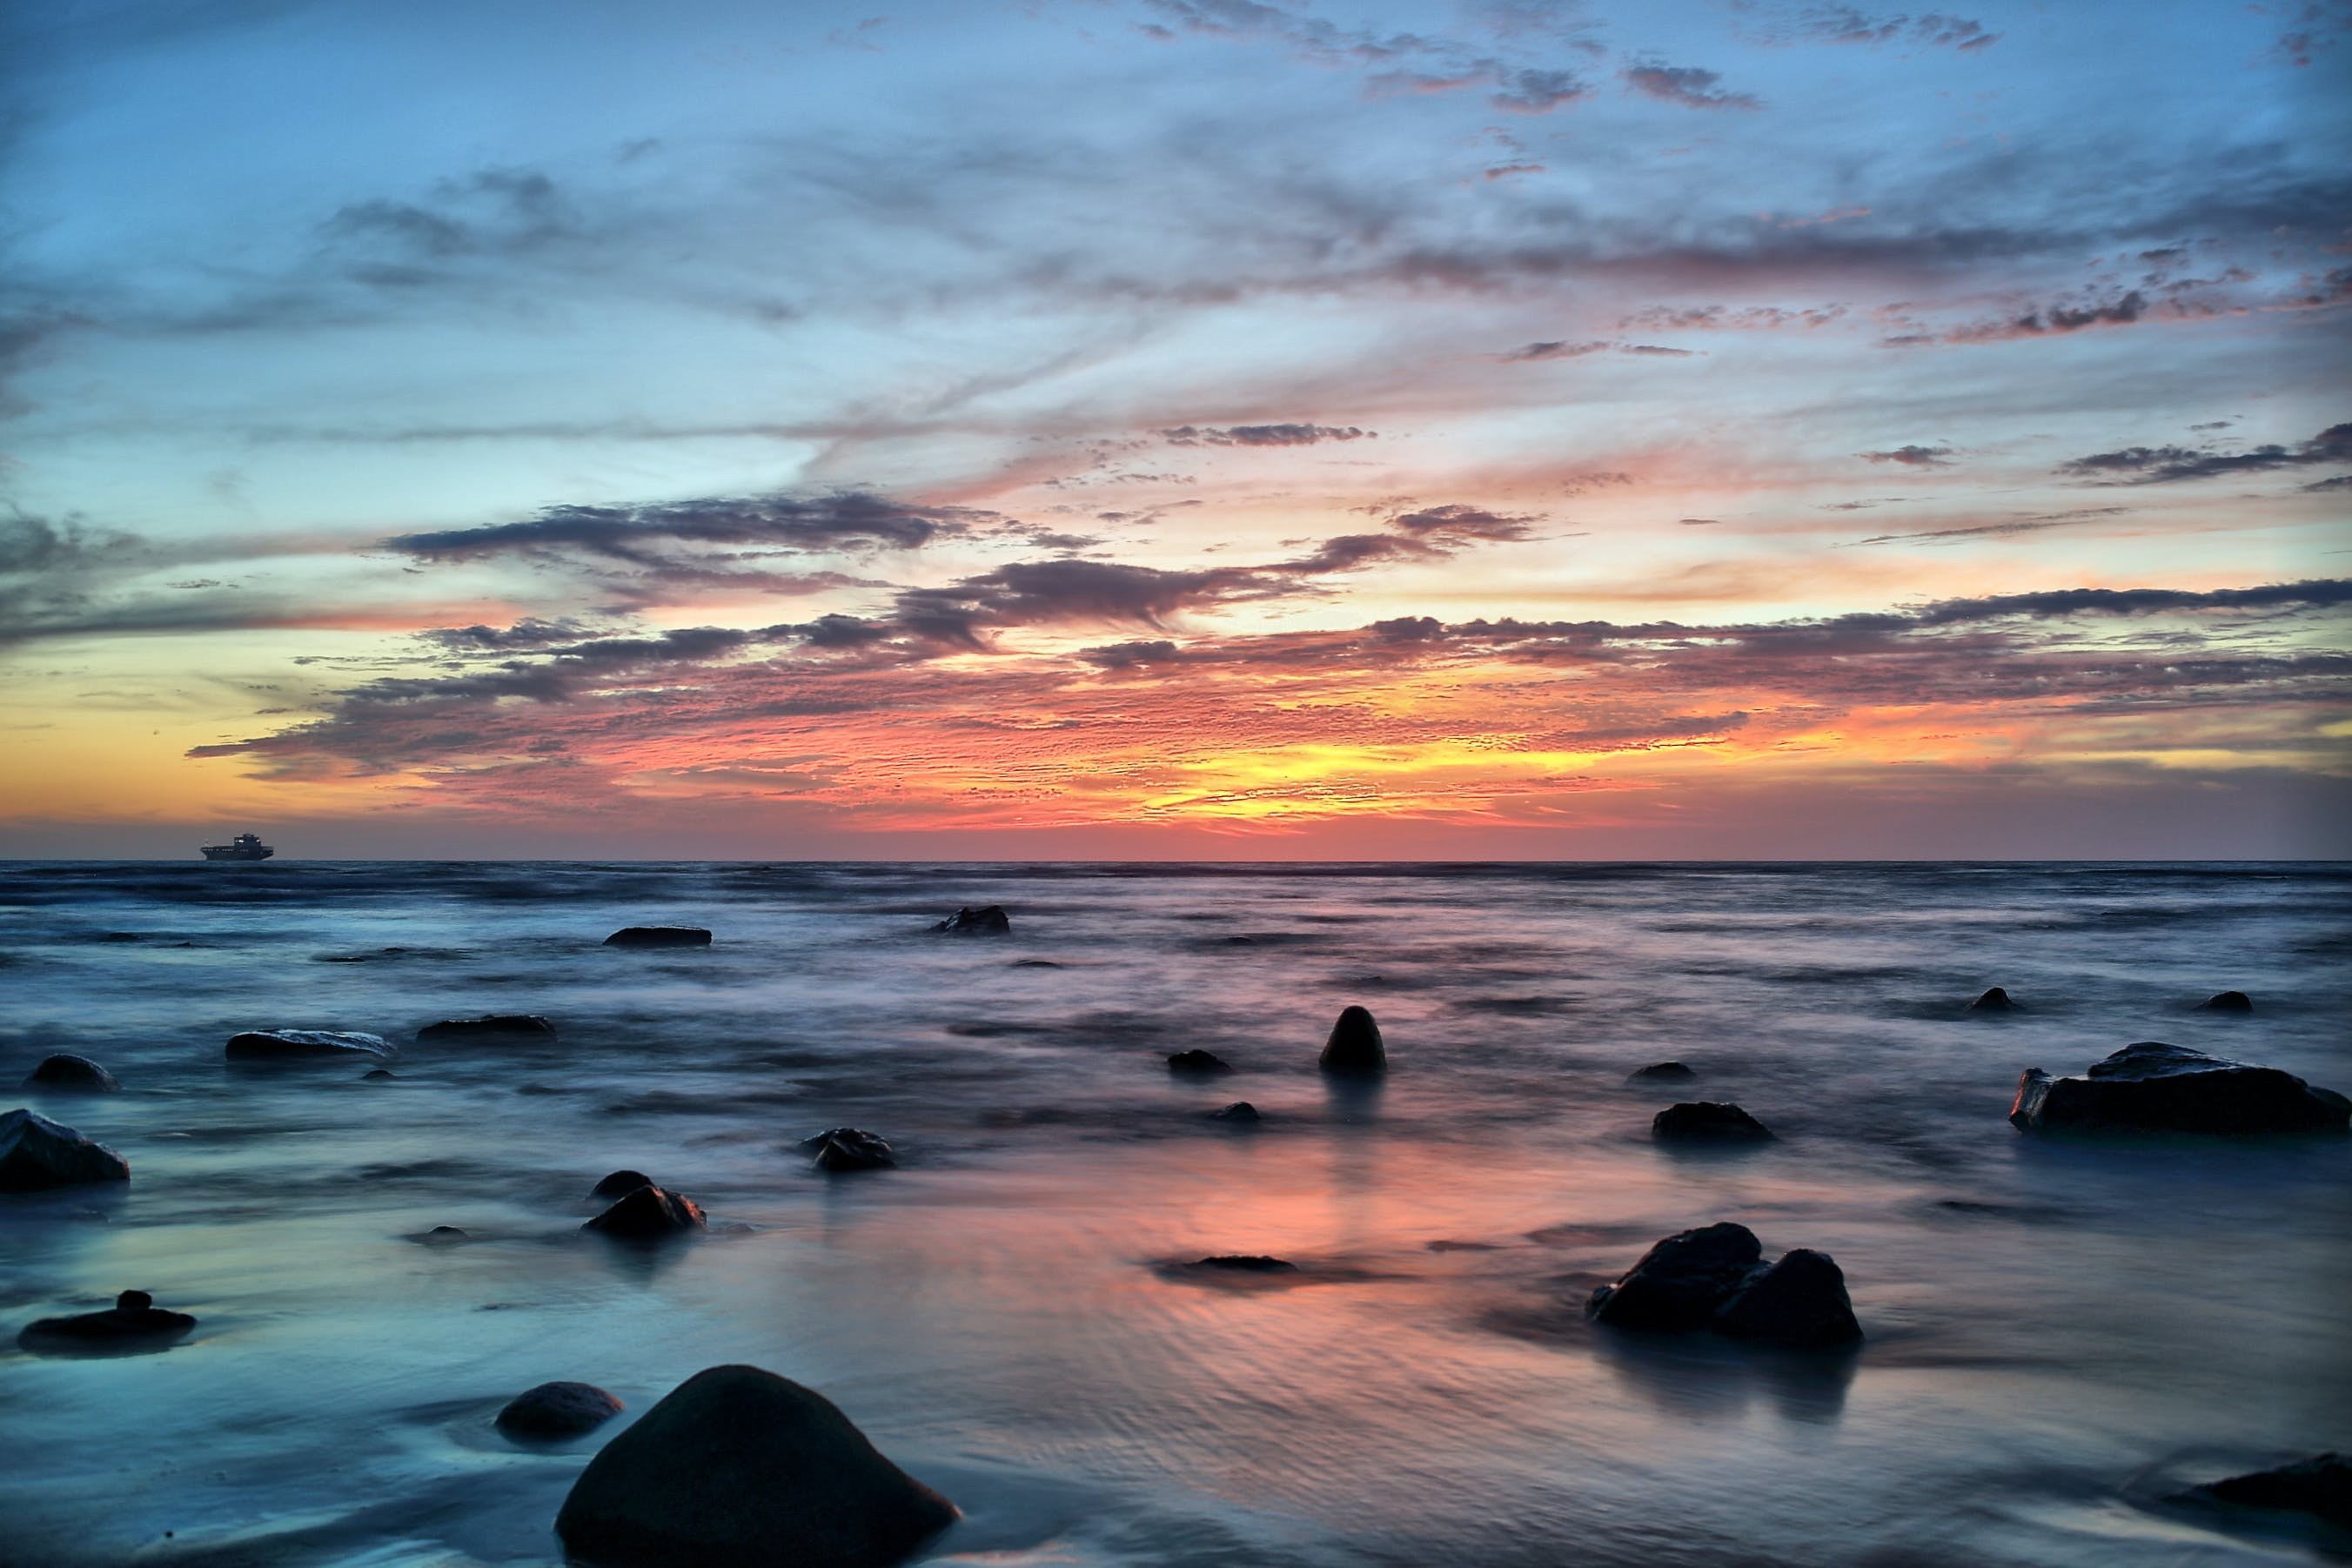 Silhouette of Stones on Seawater during Sunset